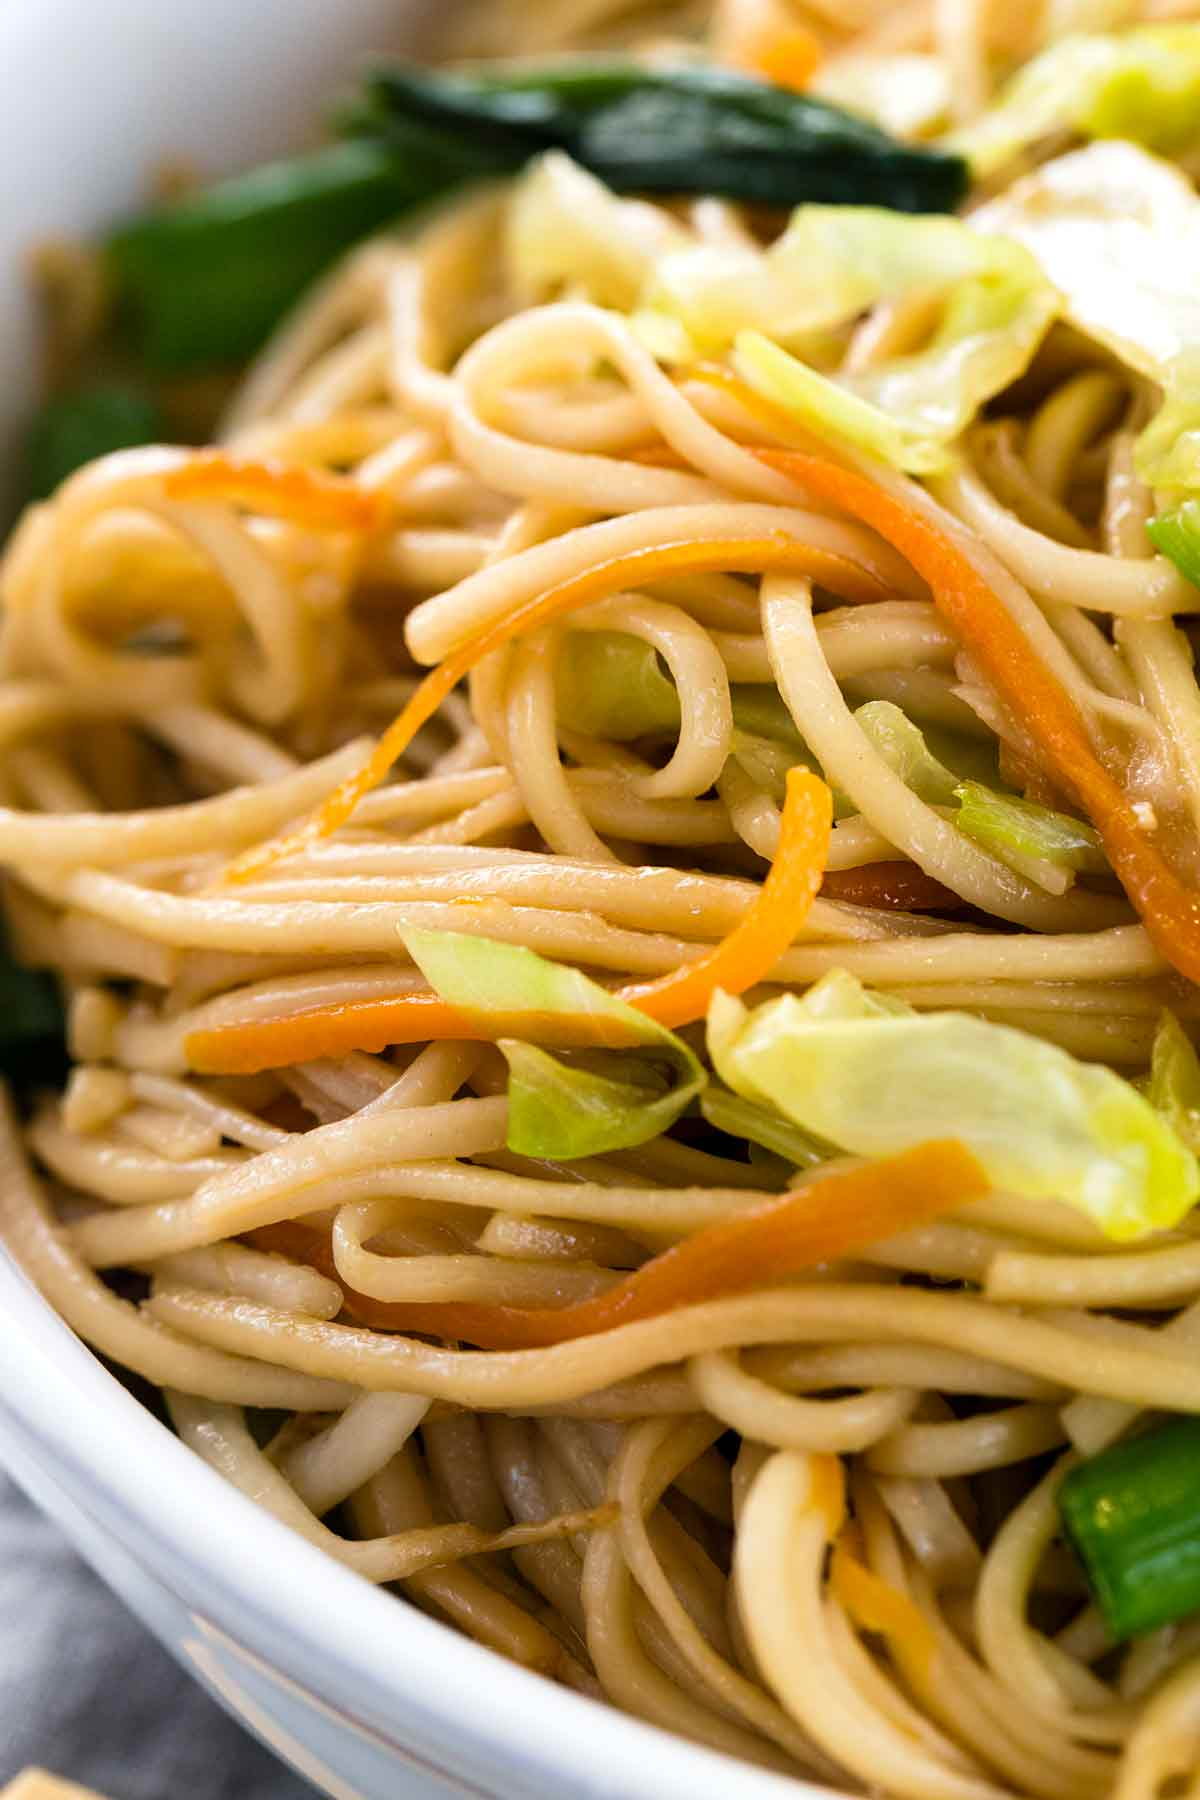 Close up photo of chow mein noodles with pieces of carrots and cabbage